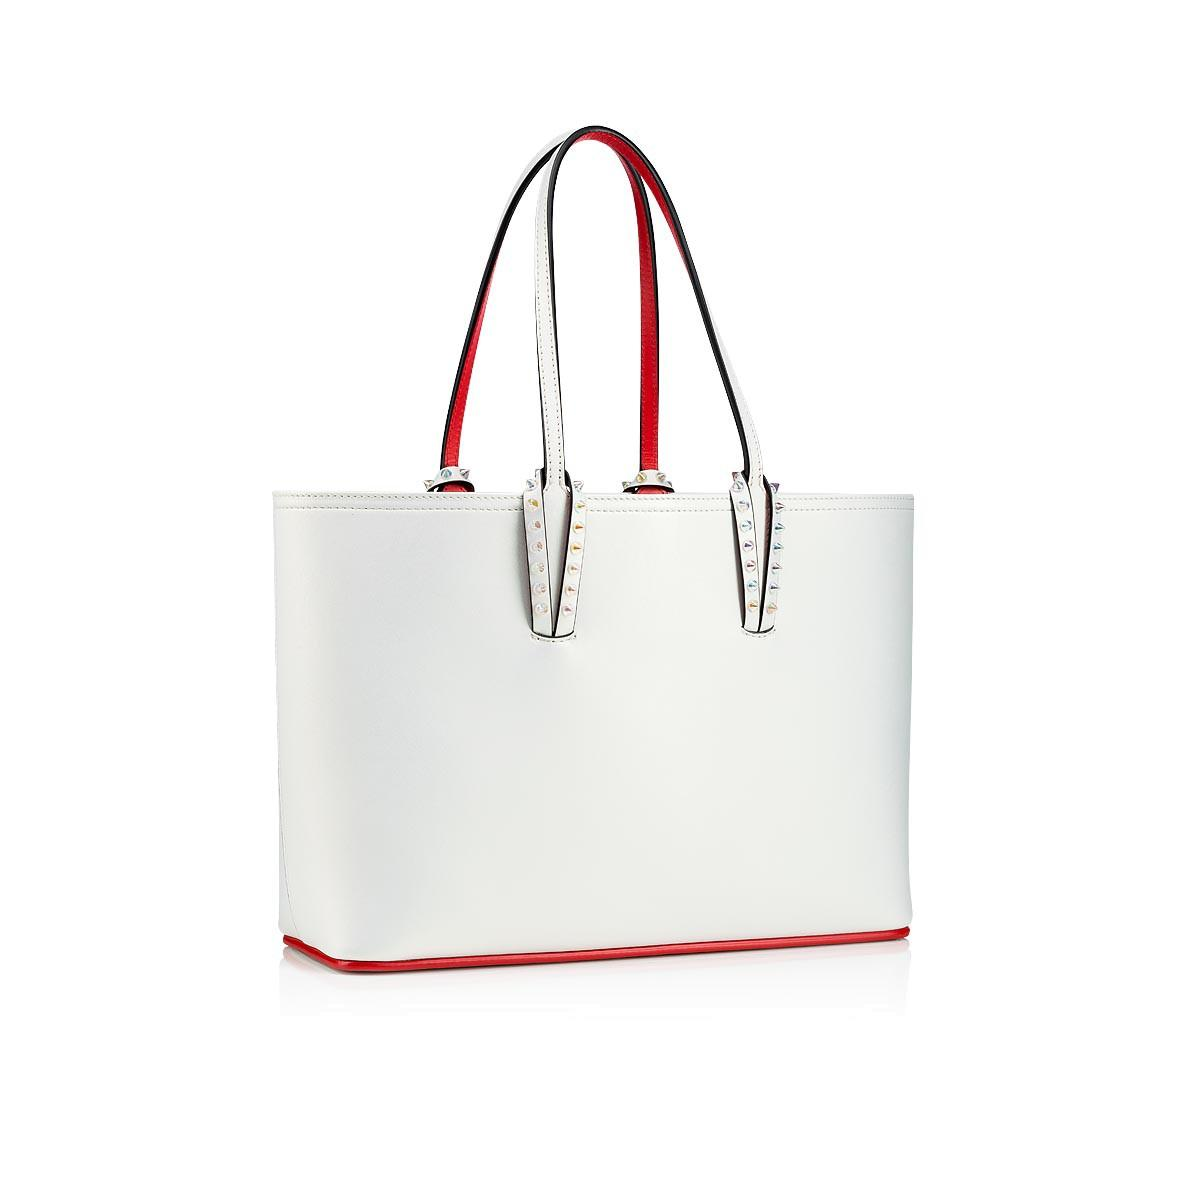 Christian Louboutin - White Cabata Small Tote Bag - Lyst. View fullscreen a3906705c5ed5